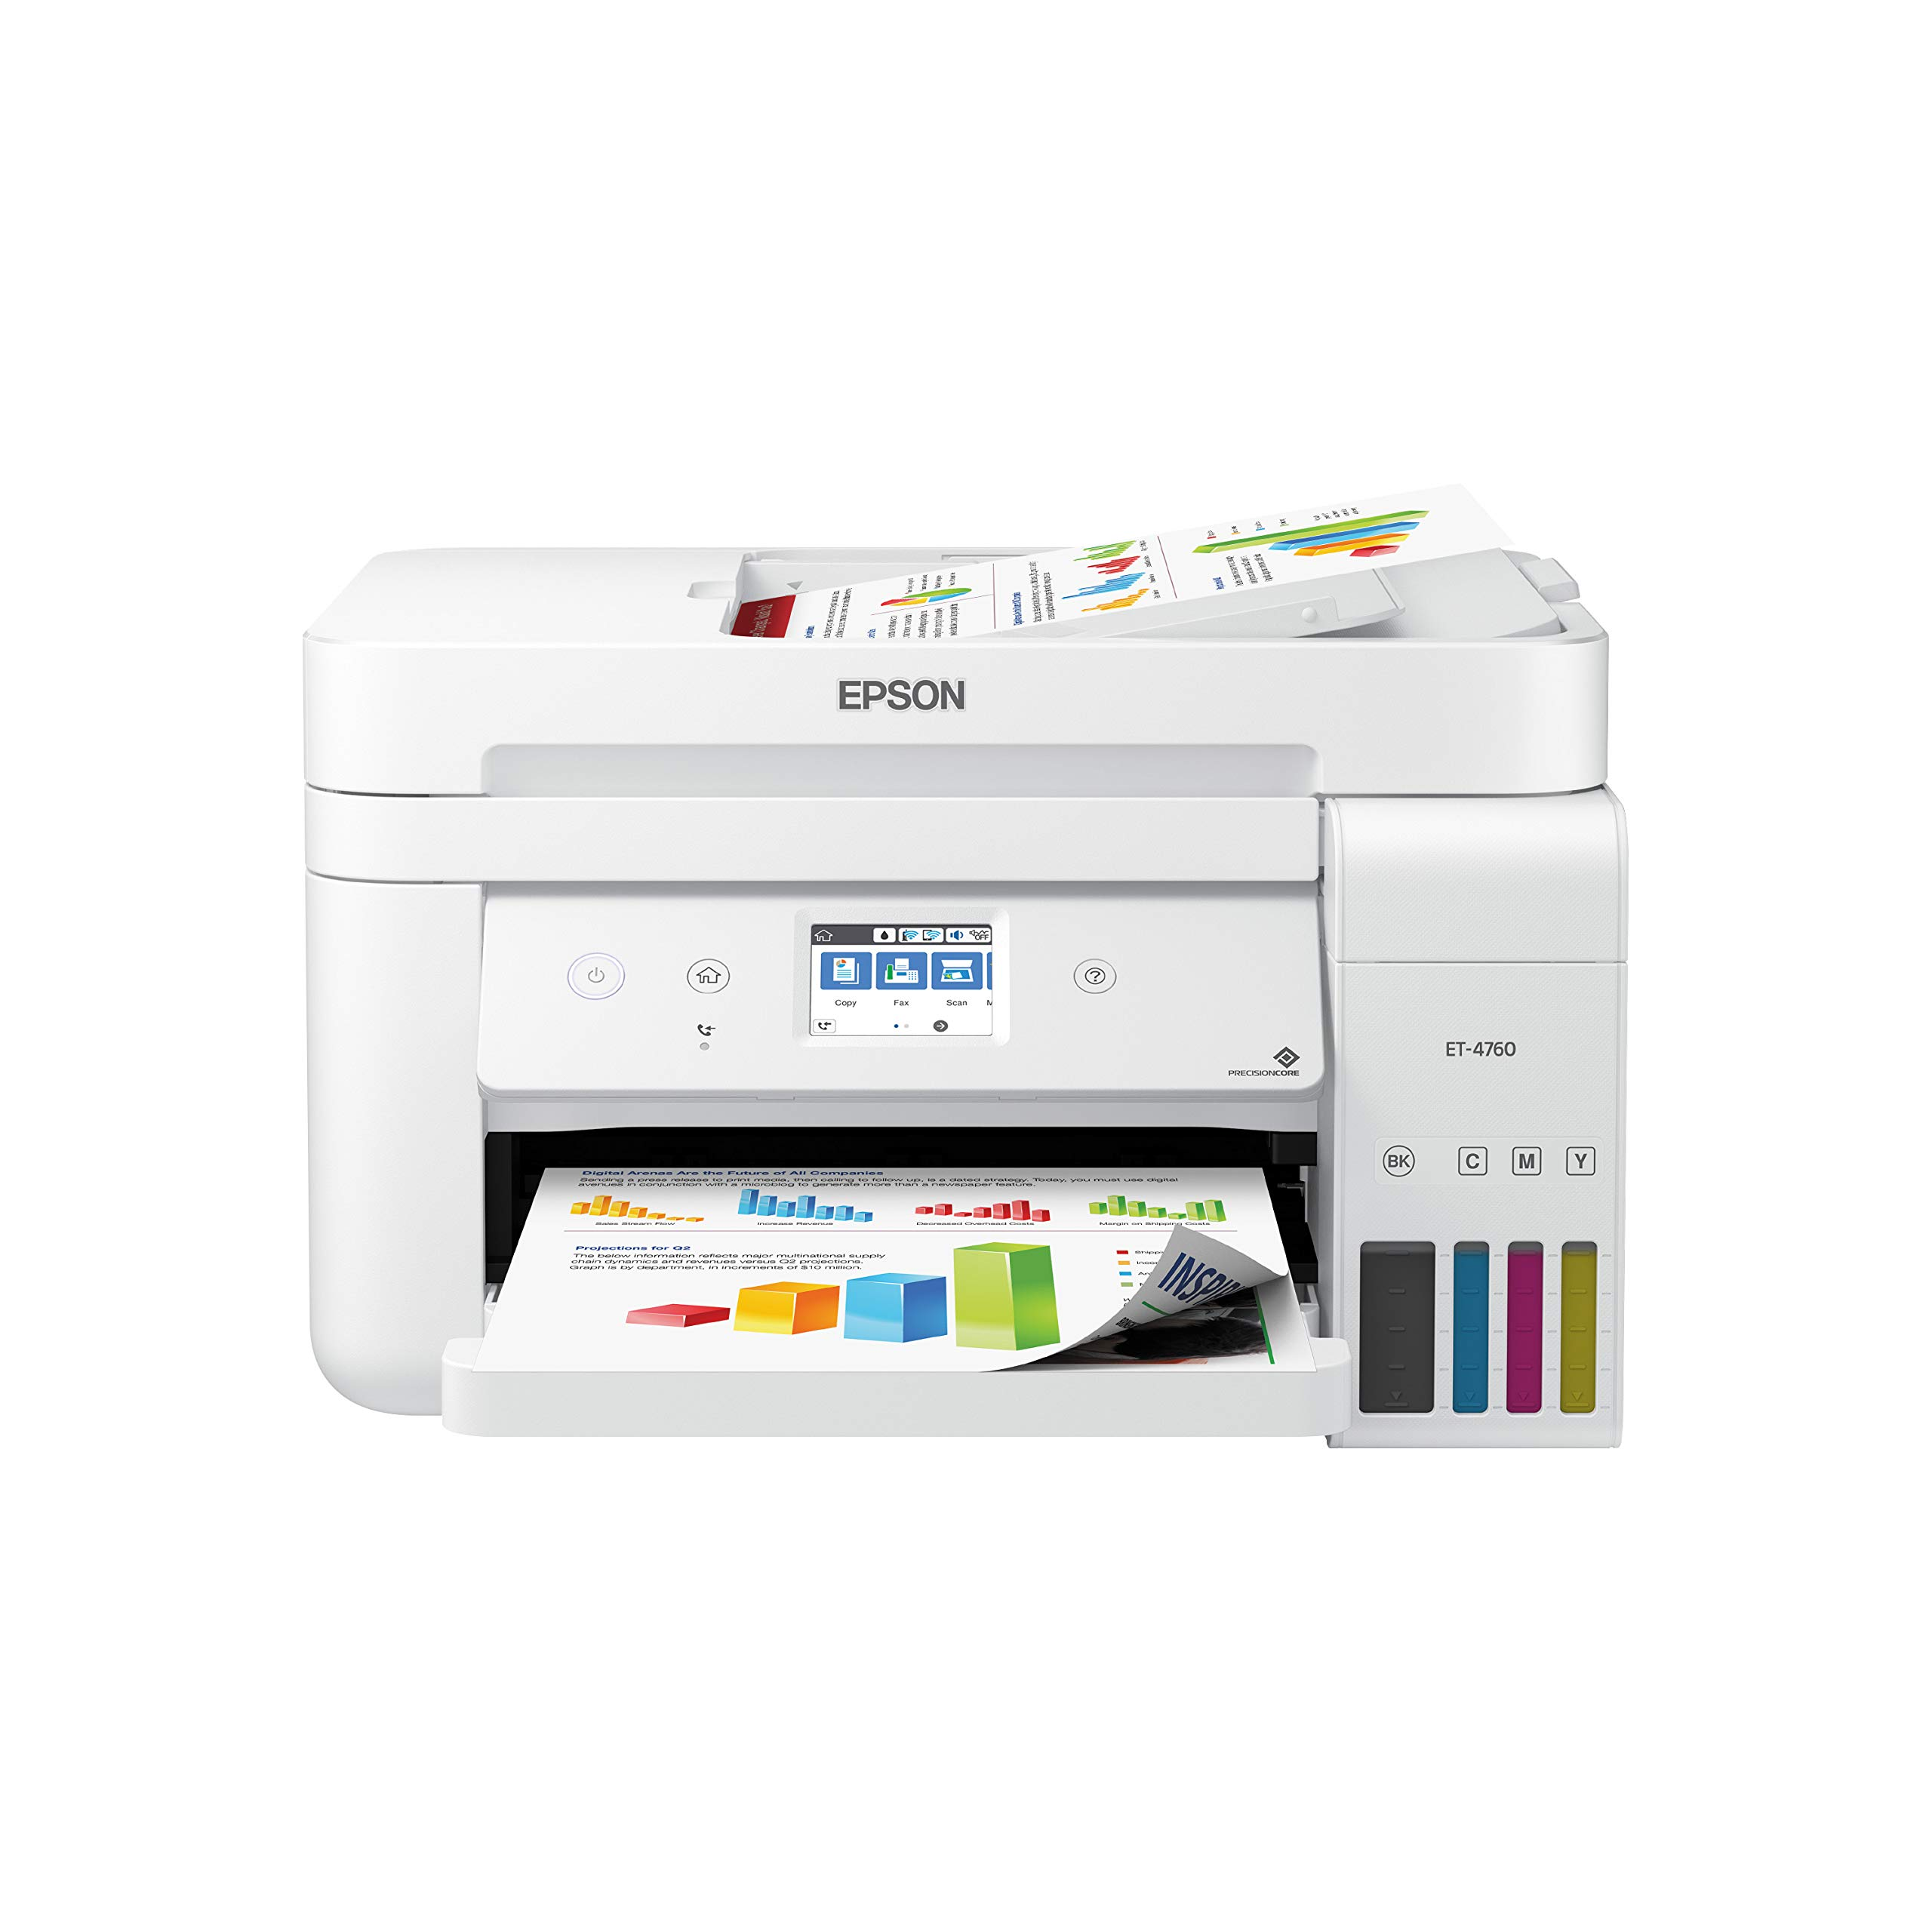 Epson EcoTank ET-4760 Wireless Color All-in-One Cartridge-Free Supertank Printer with Scanner, Copier, Fax, ADF and Ethernet - White by Epson